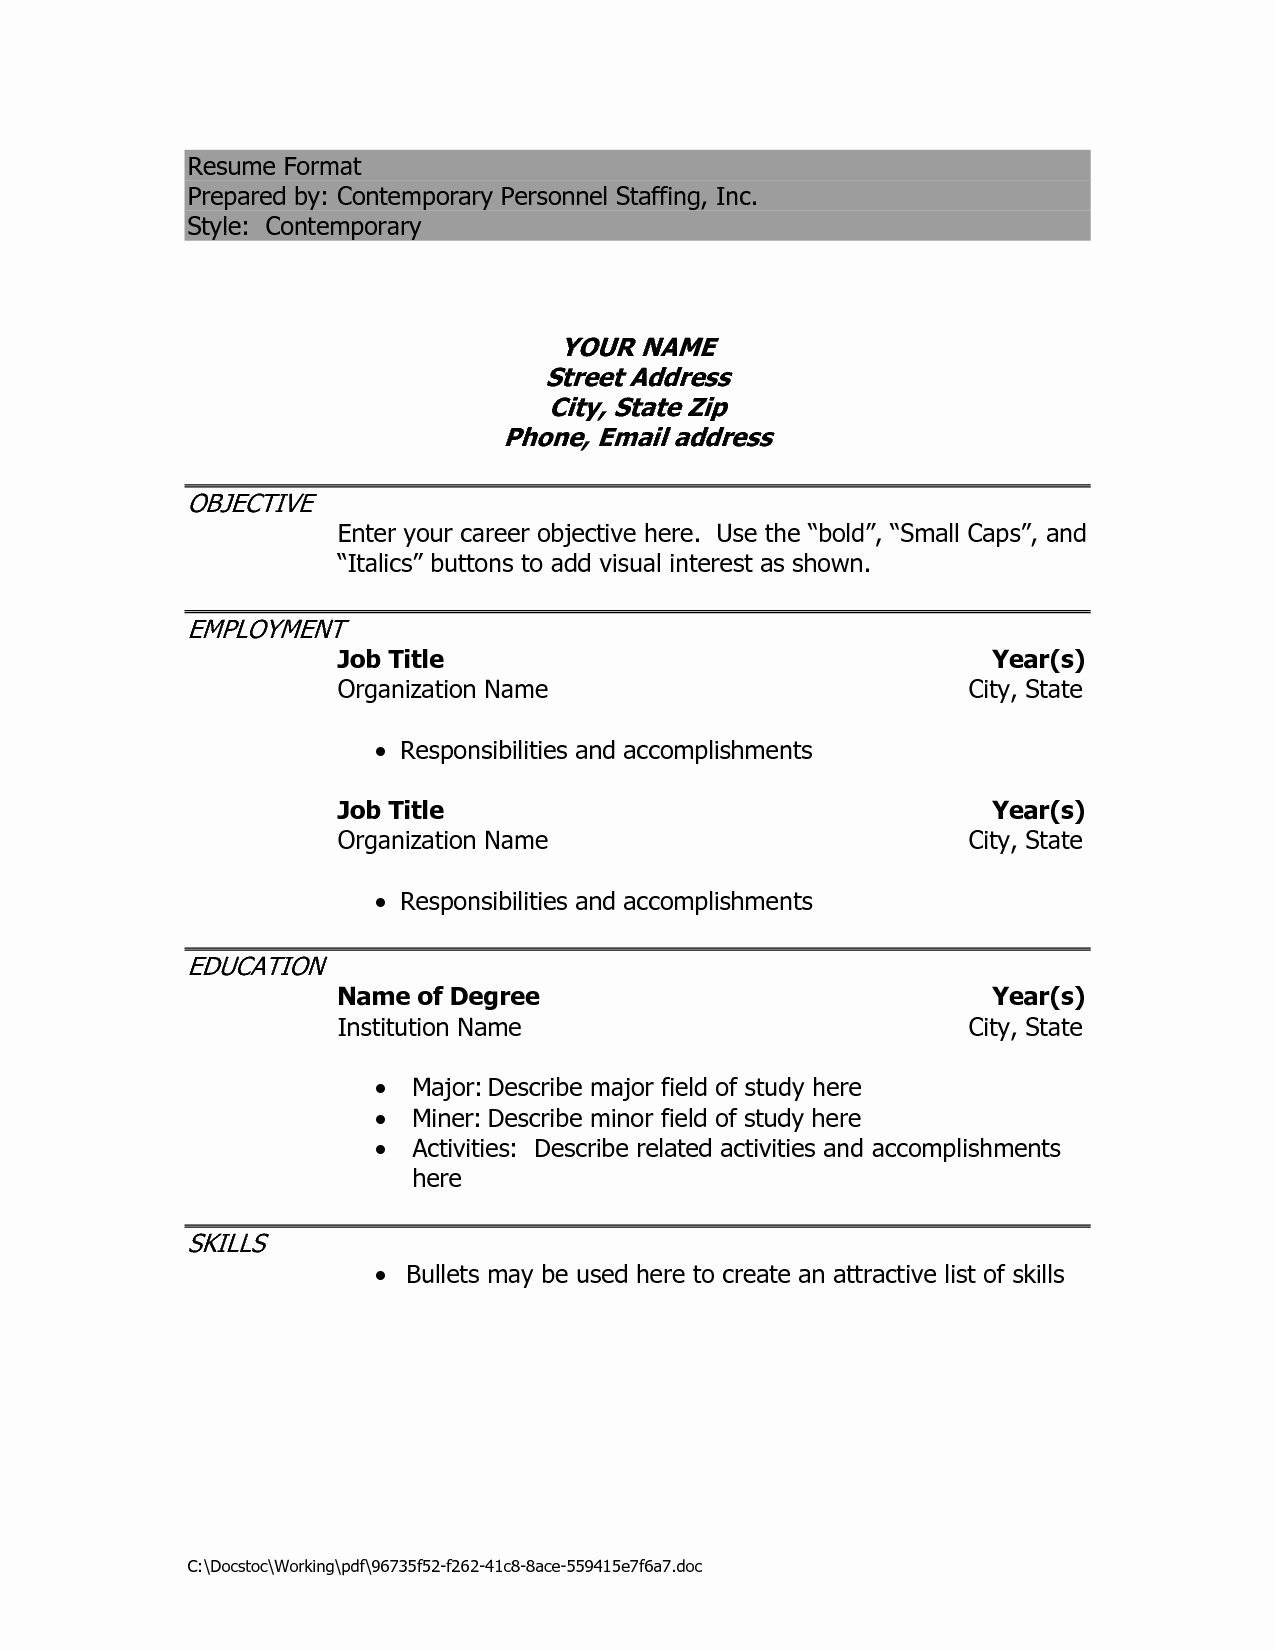 Google Docs Resume Template Free Cover Letter Samples